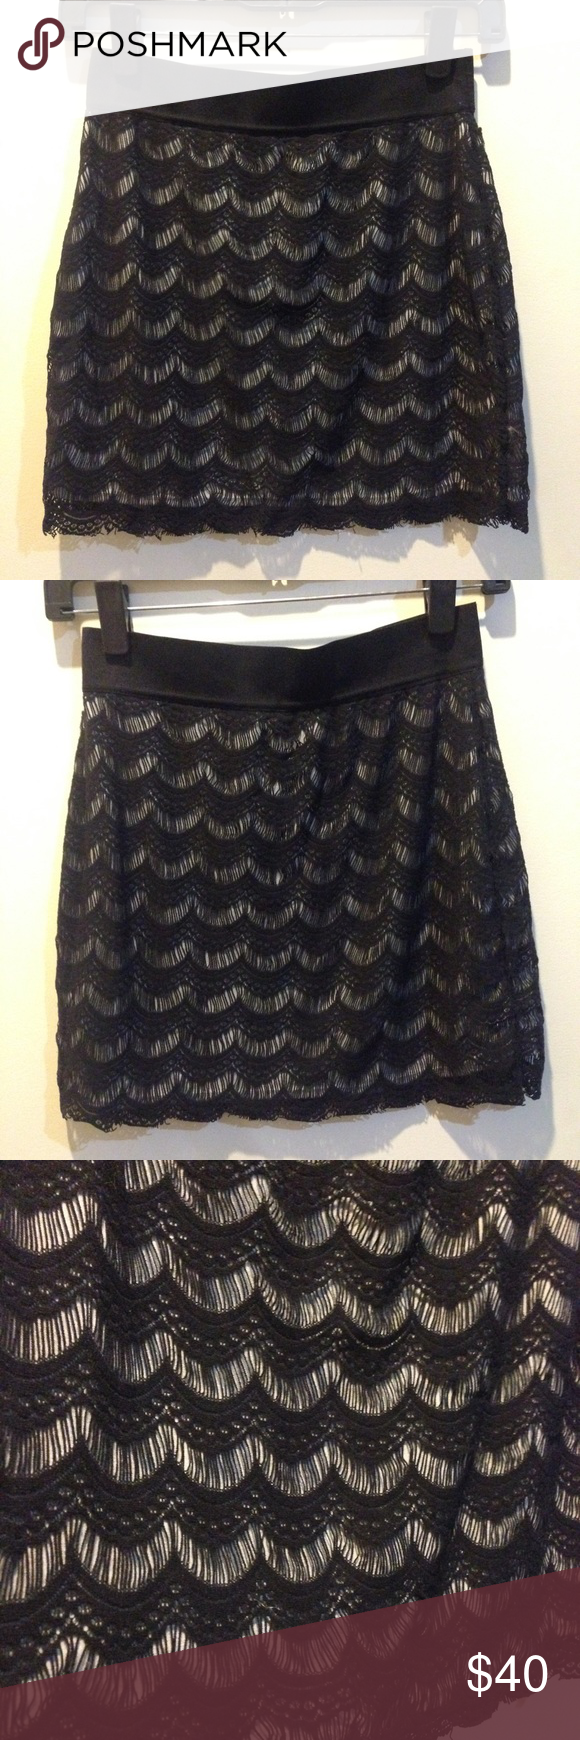 FREE PEOPLE Black Lace Overlay Scalloped Skirt Free People skirt with a black lace overlay on a white background. Waist is elastic, no closures and is in new condition. Size XS! Beautiful whimsical style :) Free People Skirts Mini